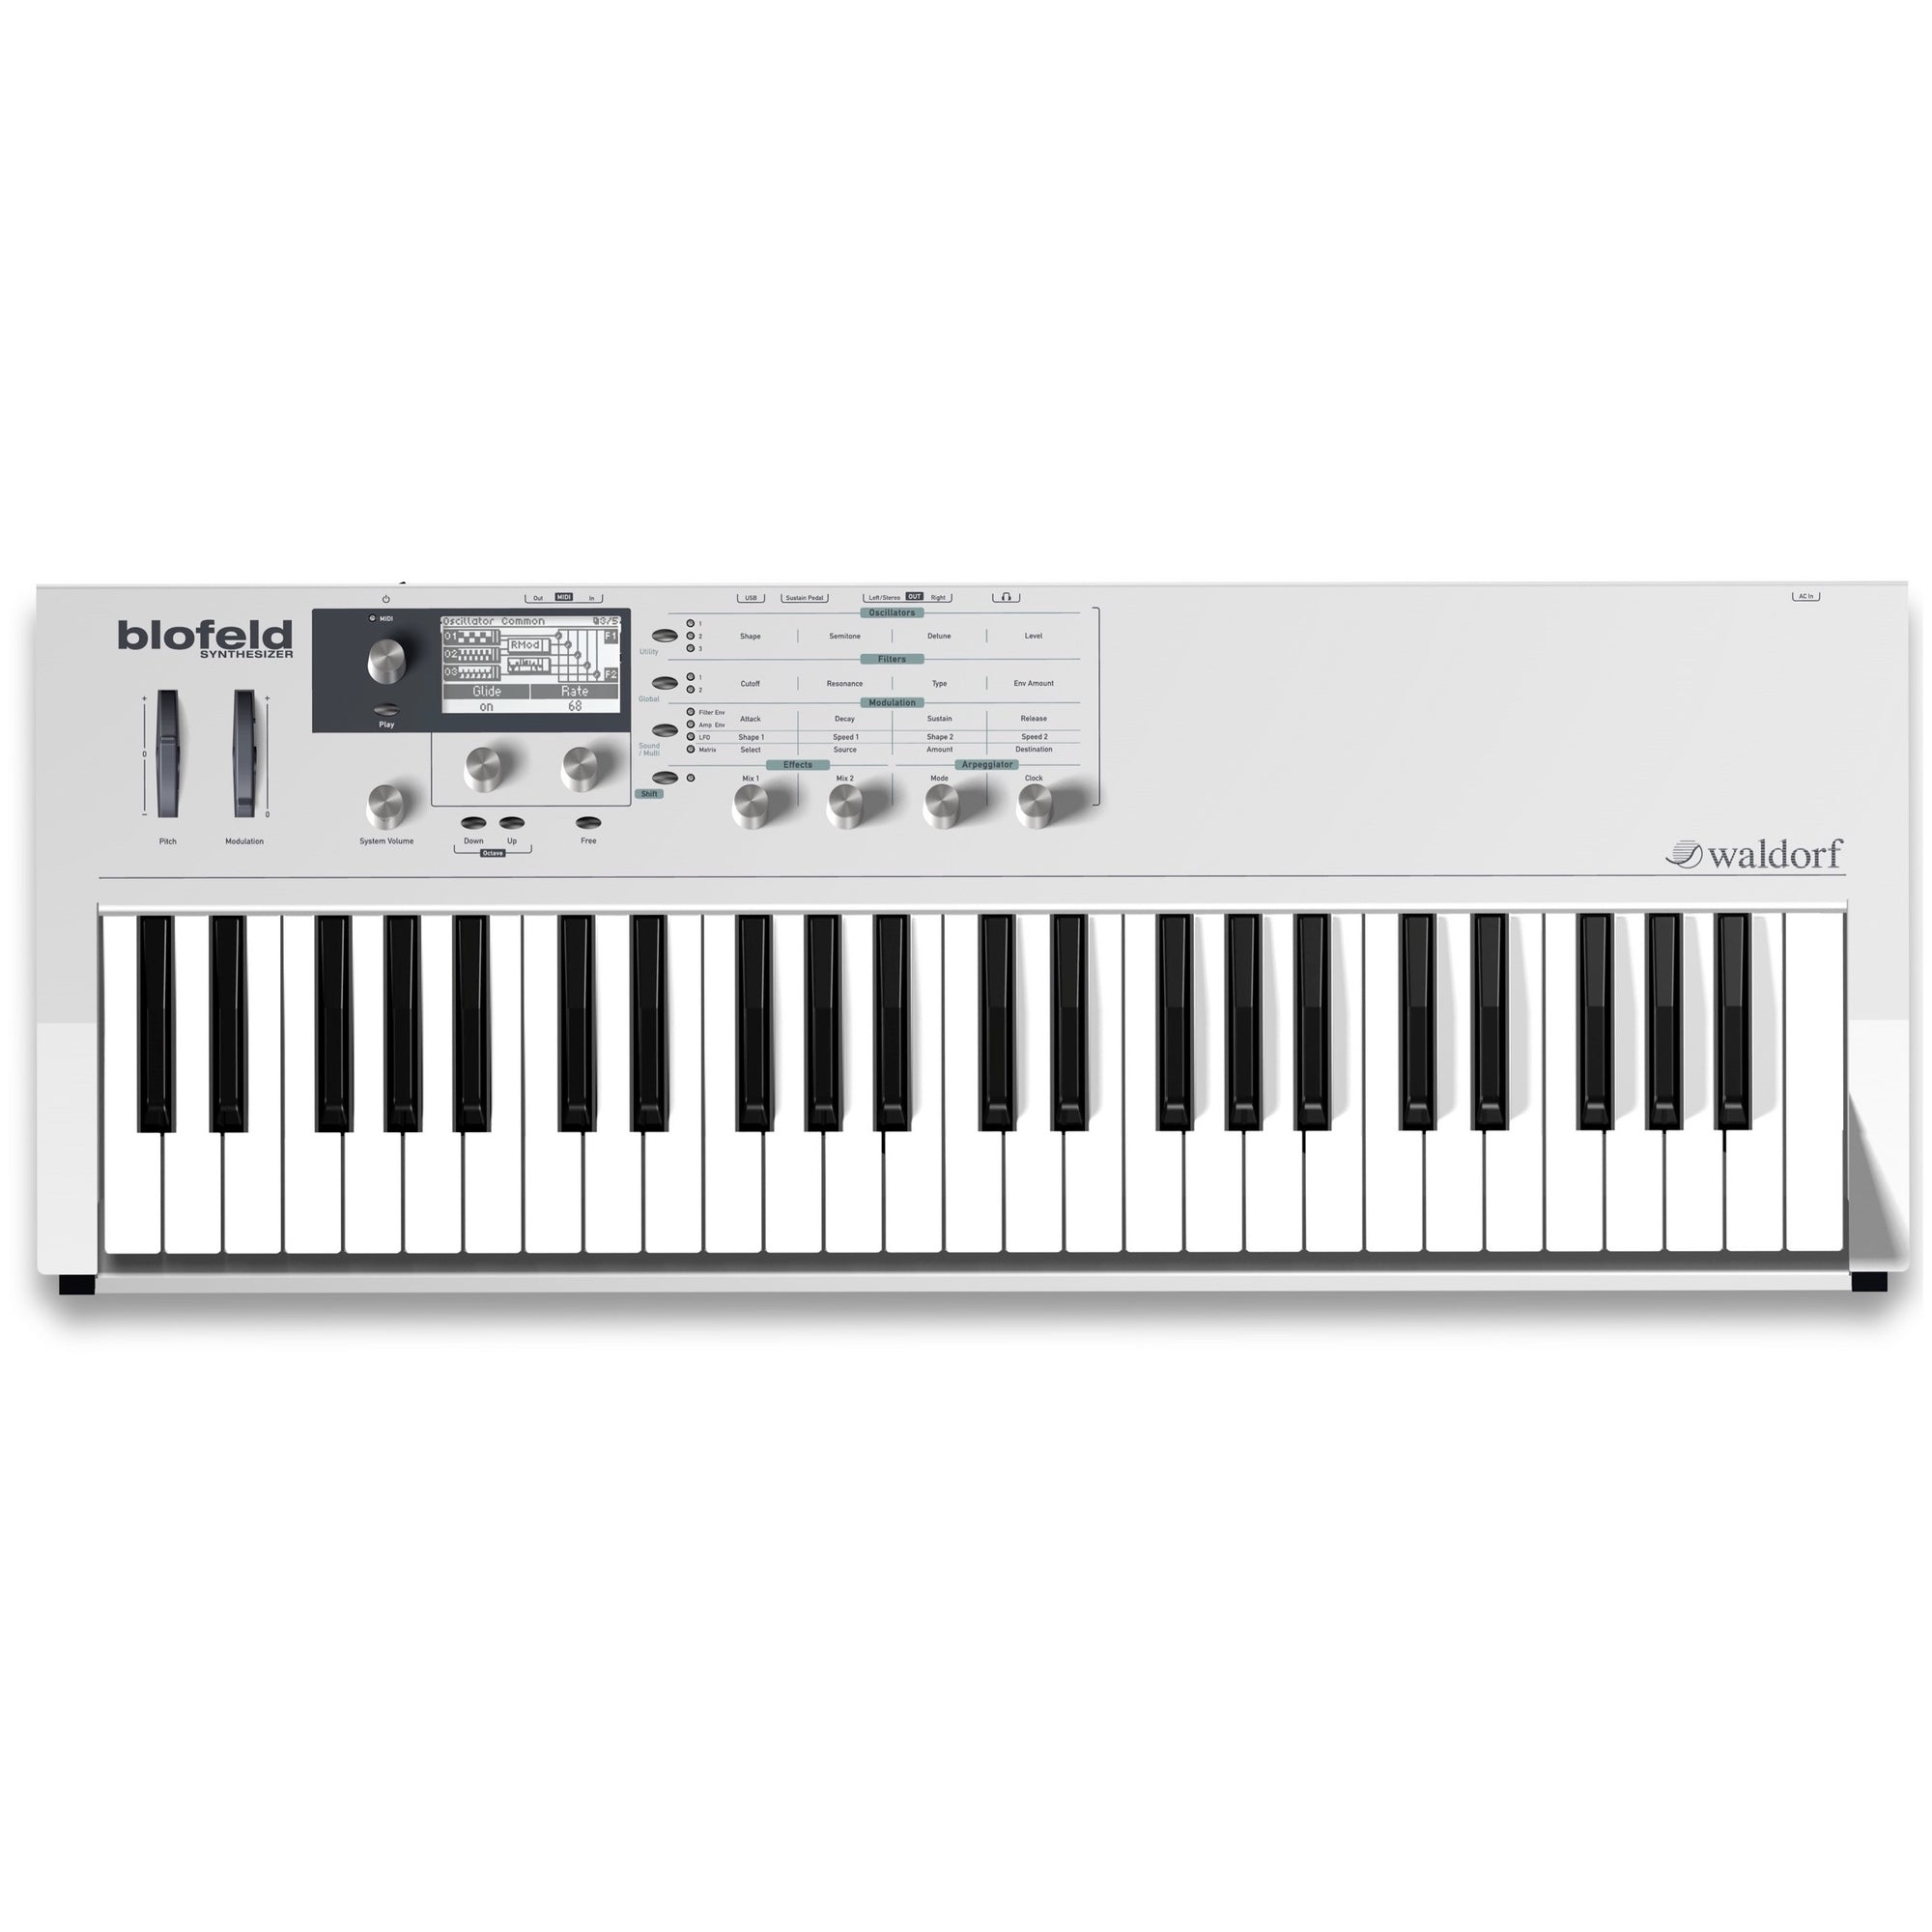 Waldorf Blofeld 49-Key Keyboard Synthesizer, White